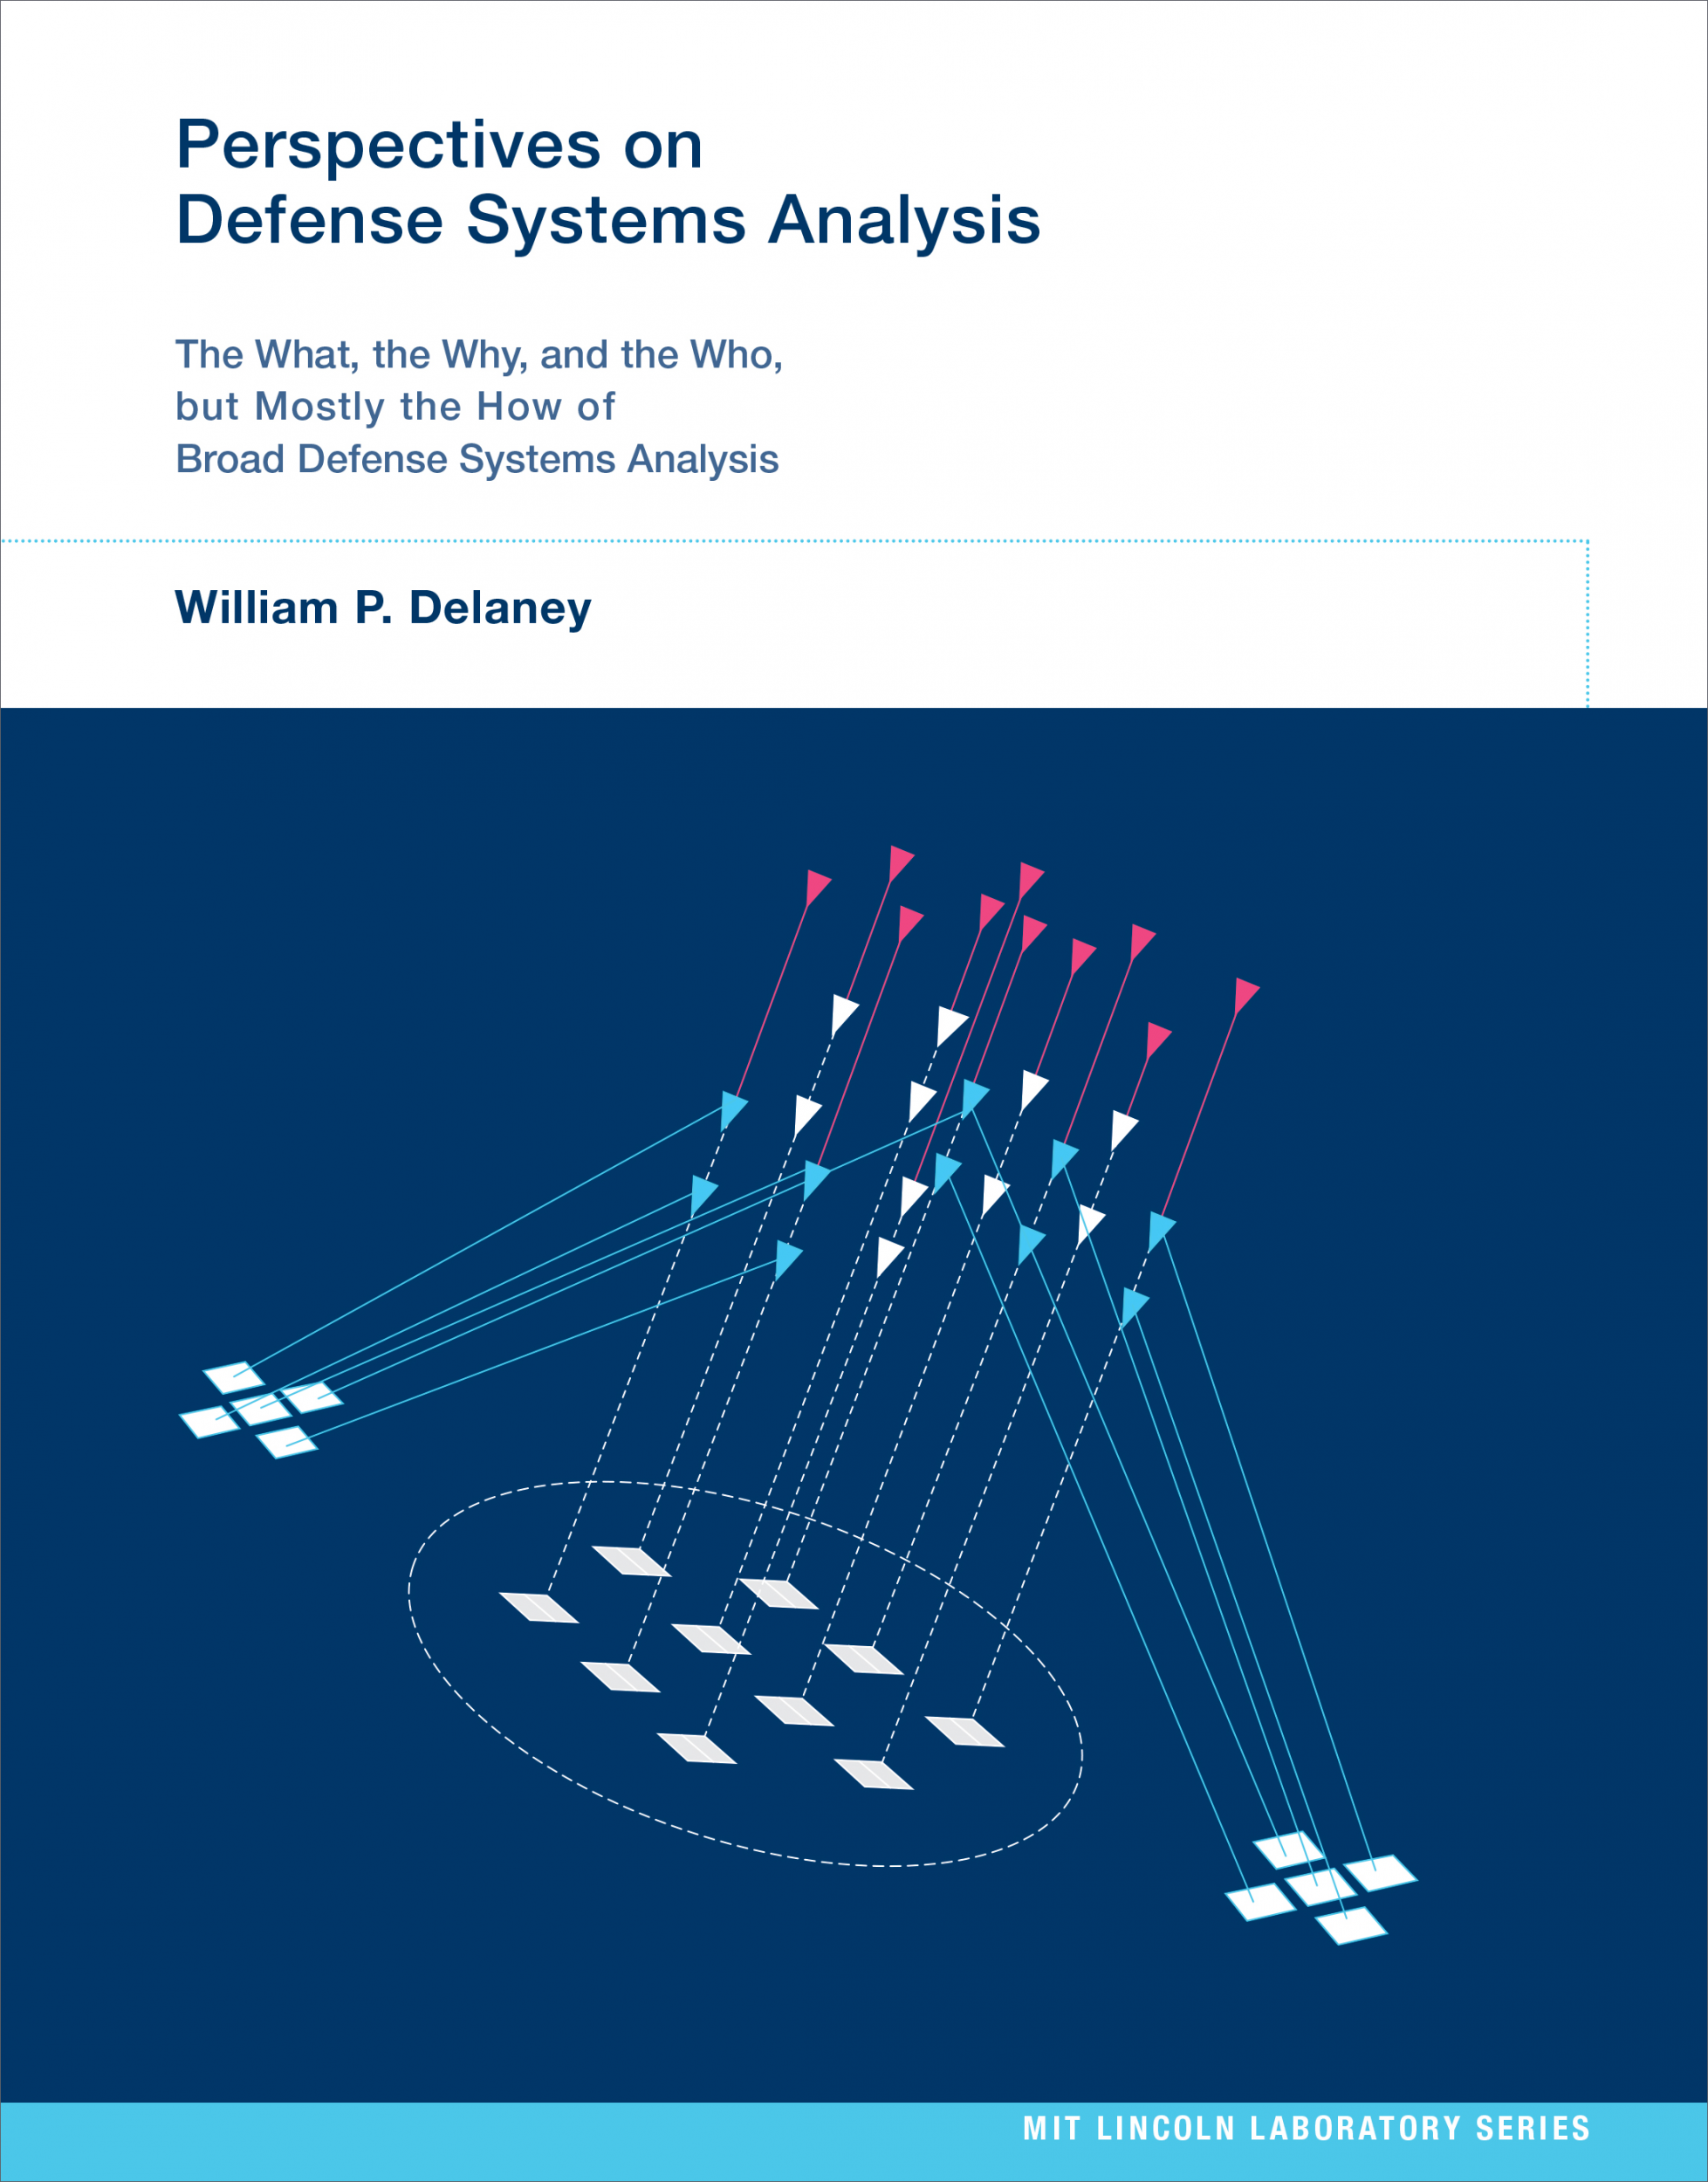 Perspectives on Defense Systems Analysis: The What, the Why, and the Who, But Mostly the How of Broad Defense Systems Analysis